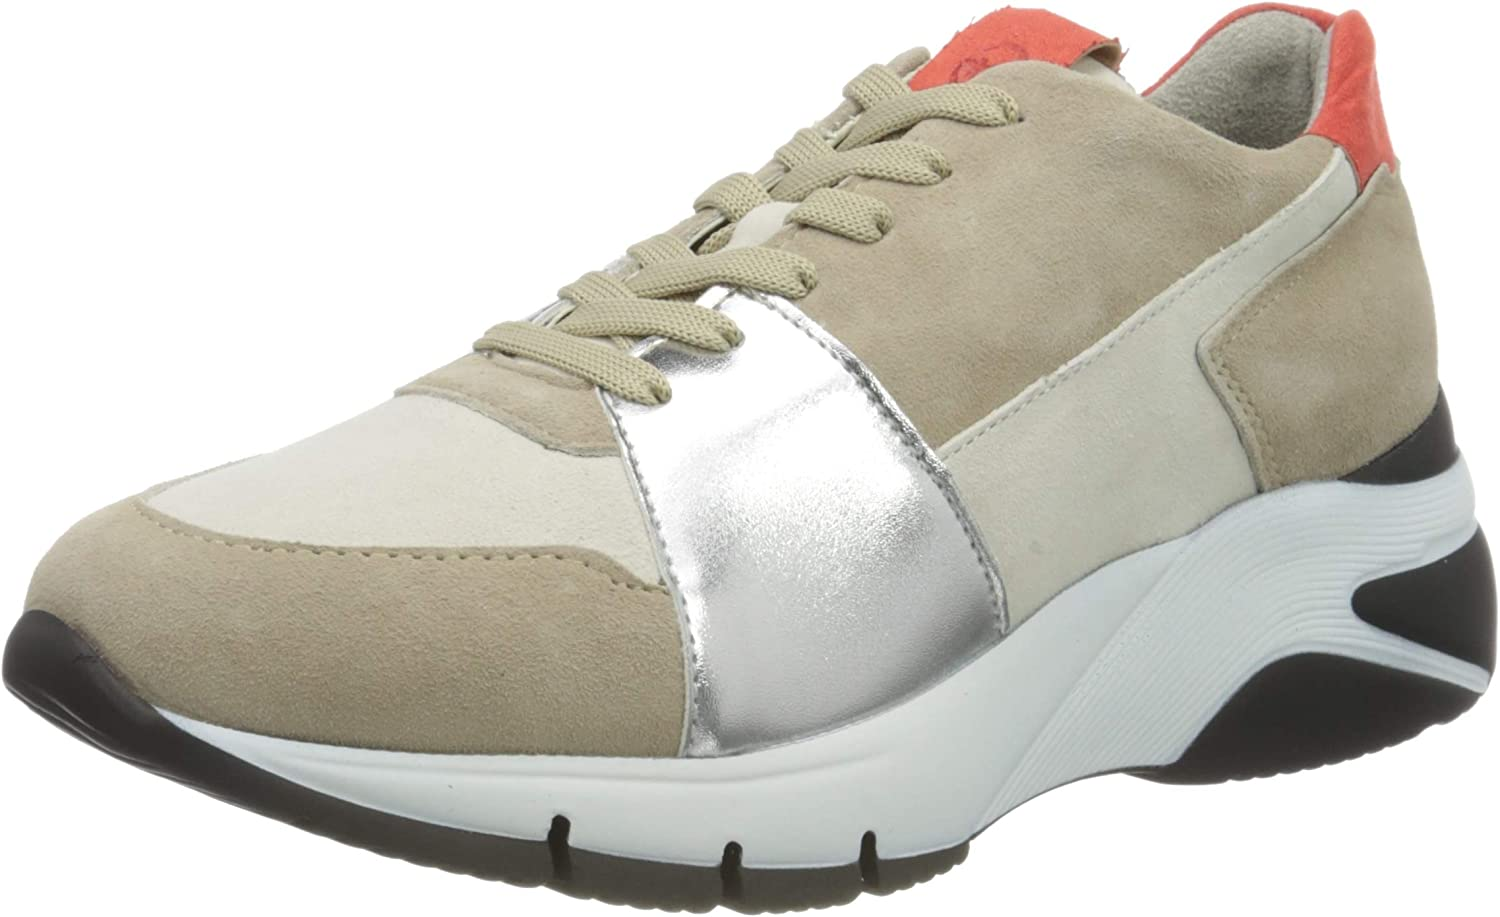 Tamaris Women's Free shipping OFFicial on posting reviews Low-Top Sneakers